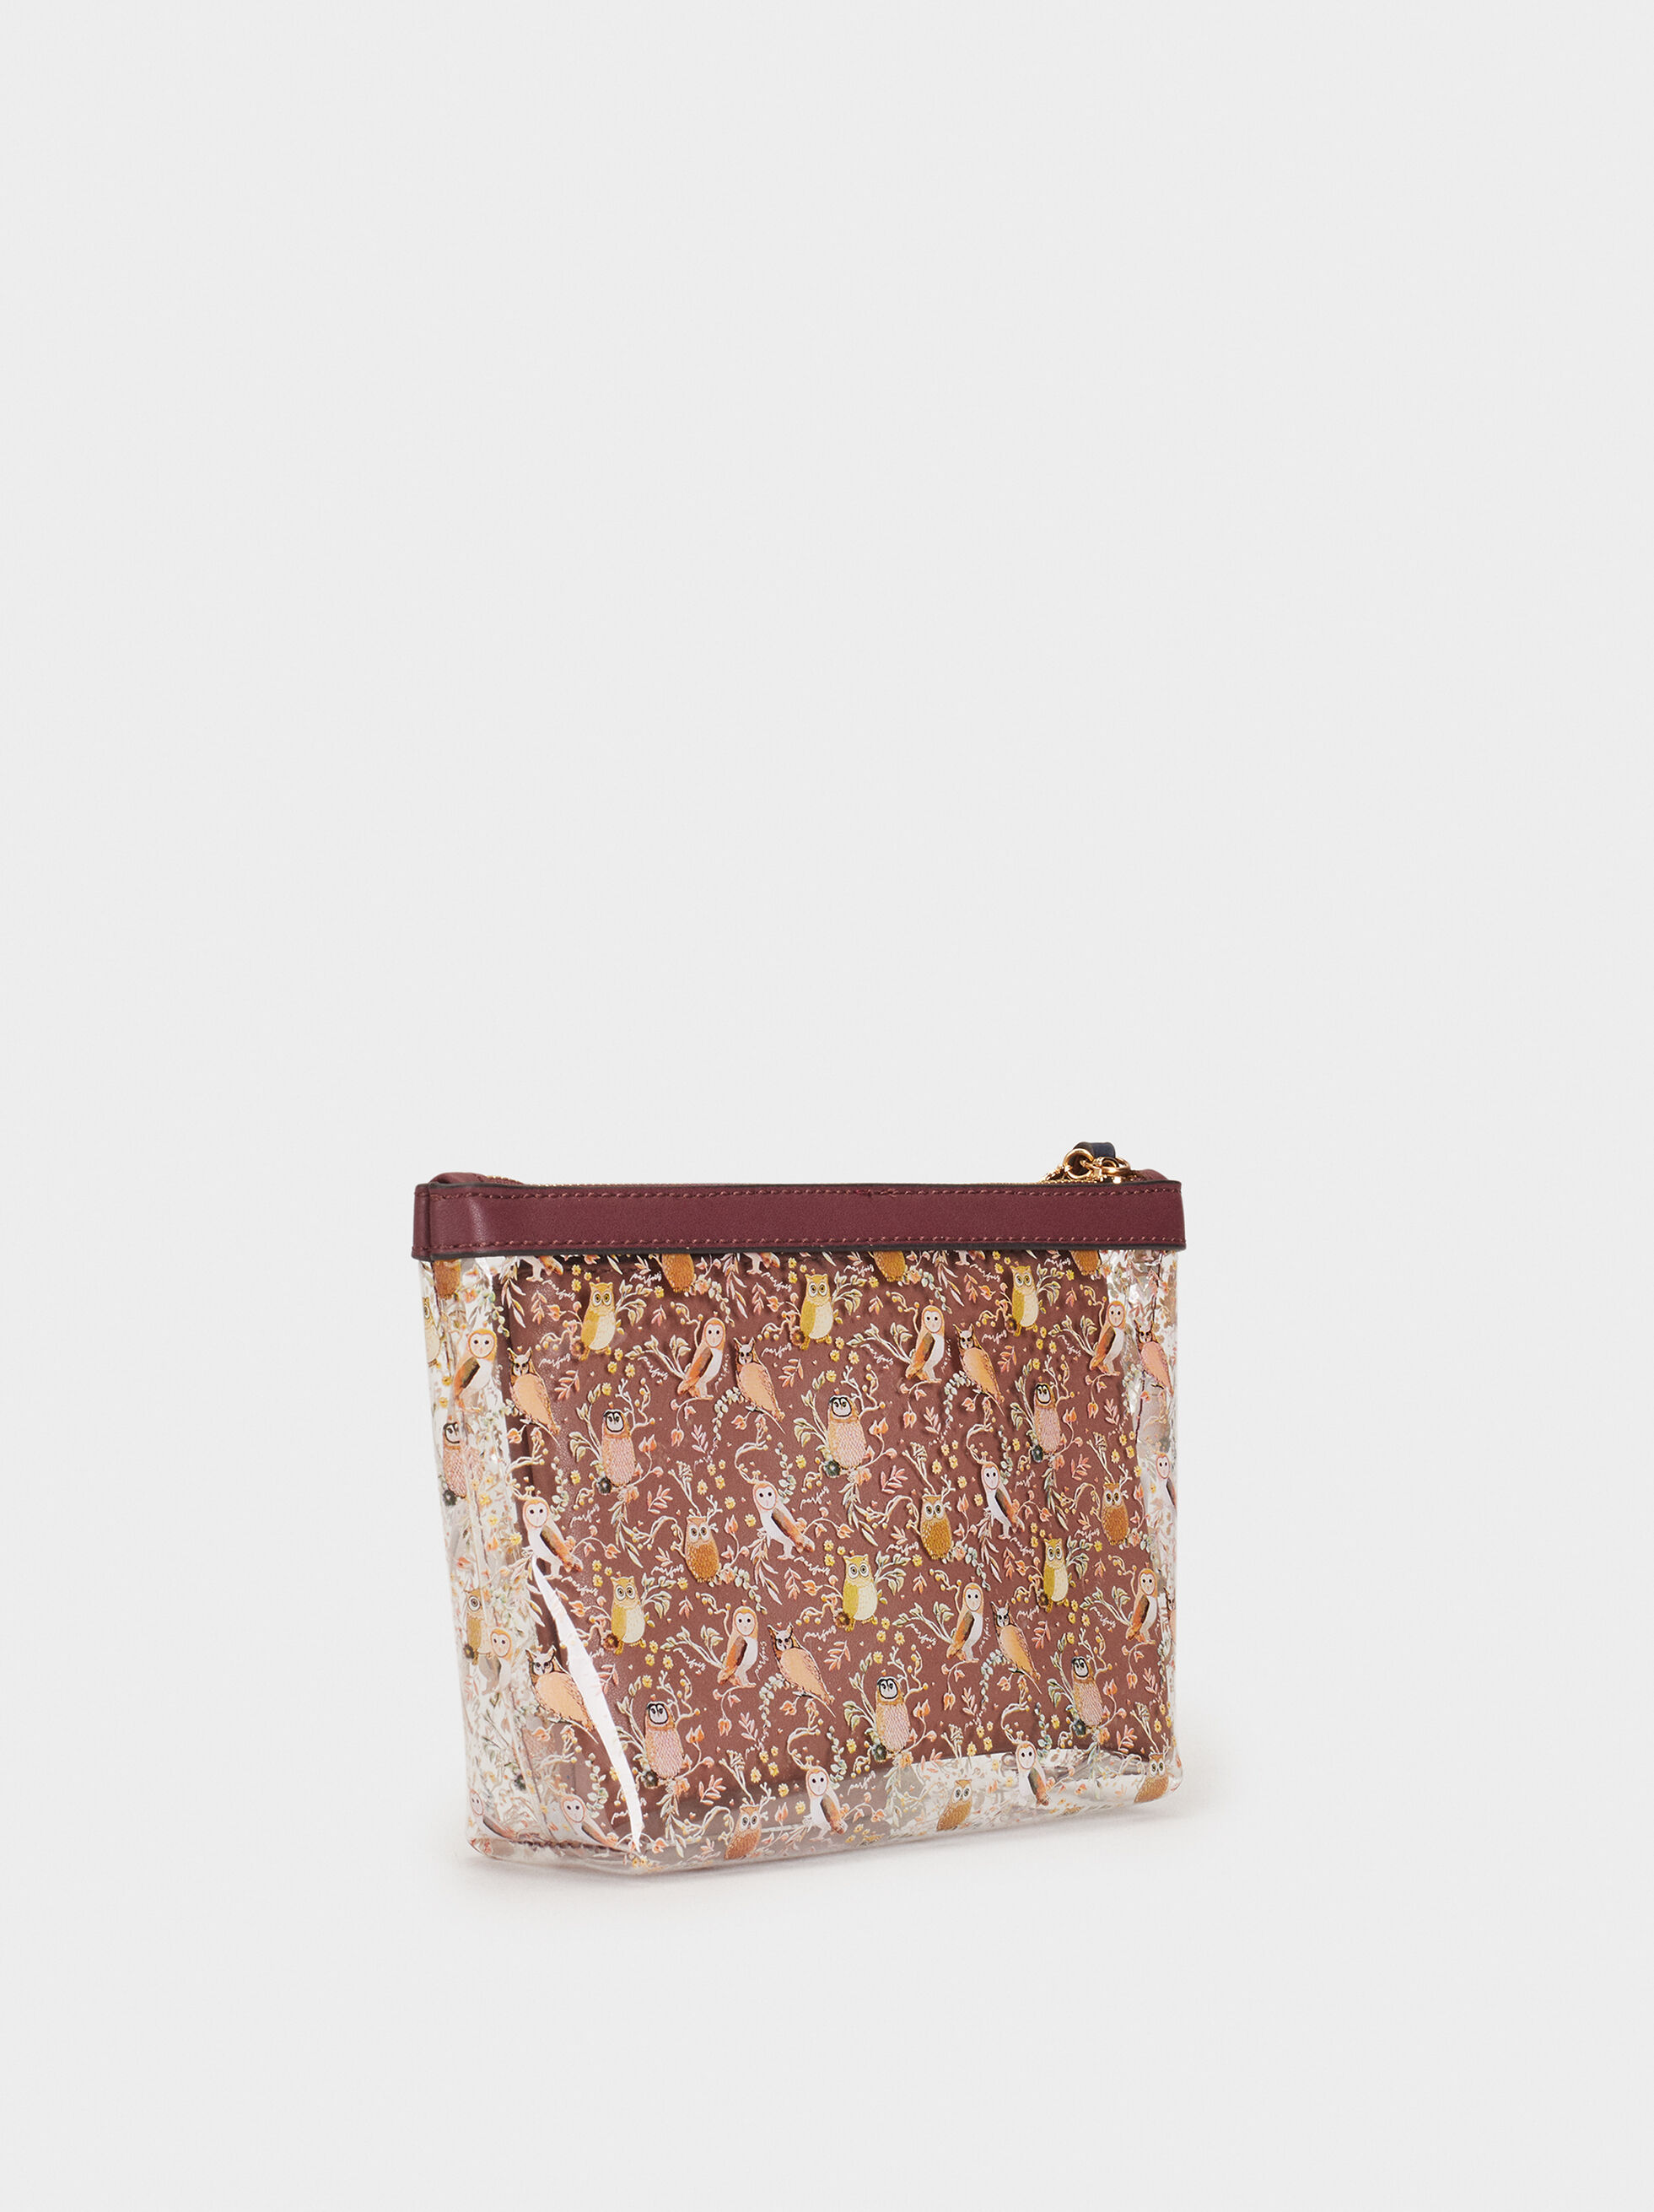 Owl Print Multi-Purpose Bag, Bordeaux, hi-res